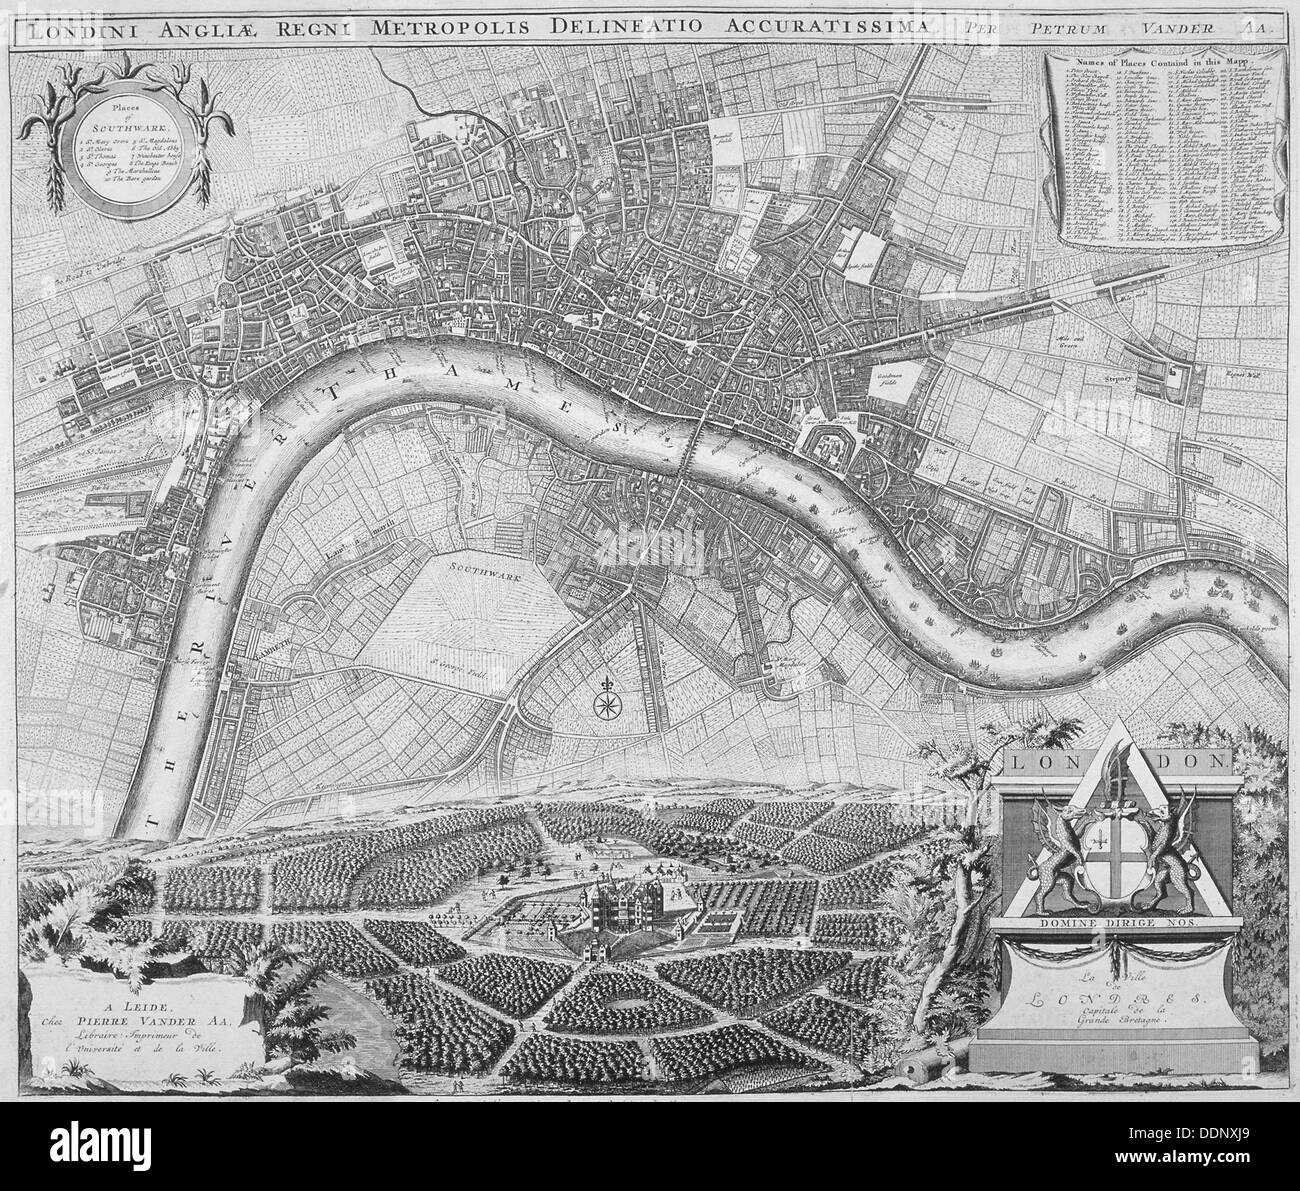 Map of London, 1690. Artist: Anon - Stock Image